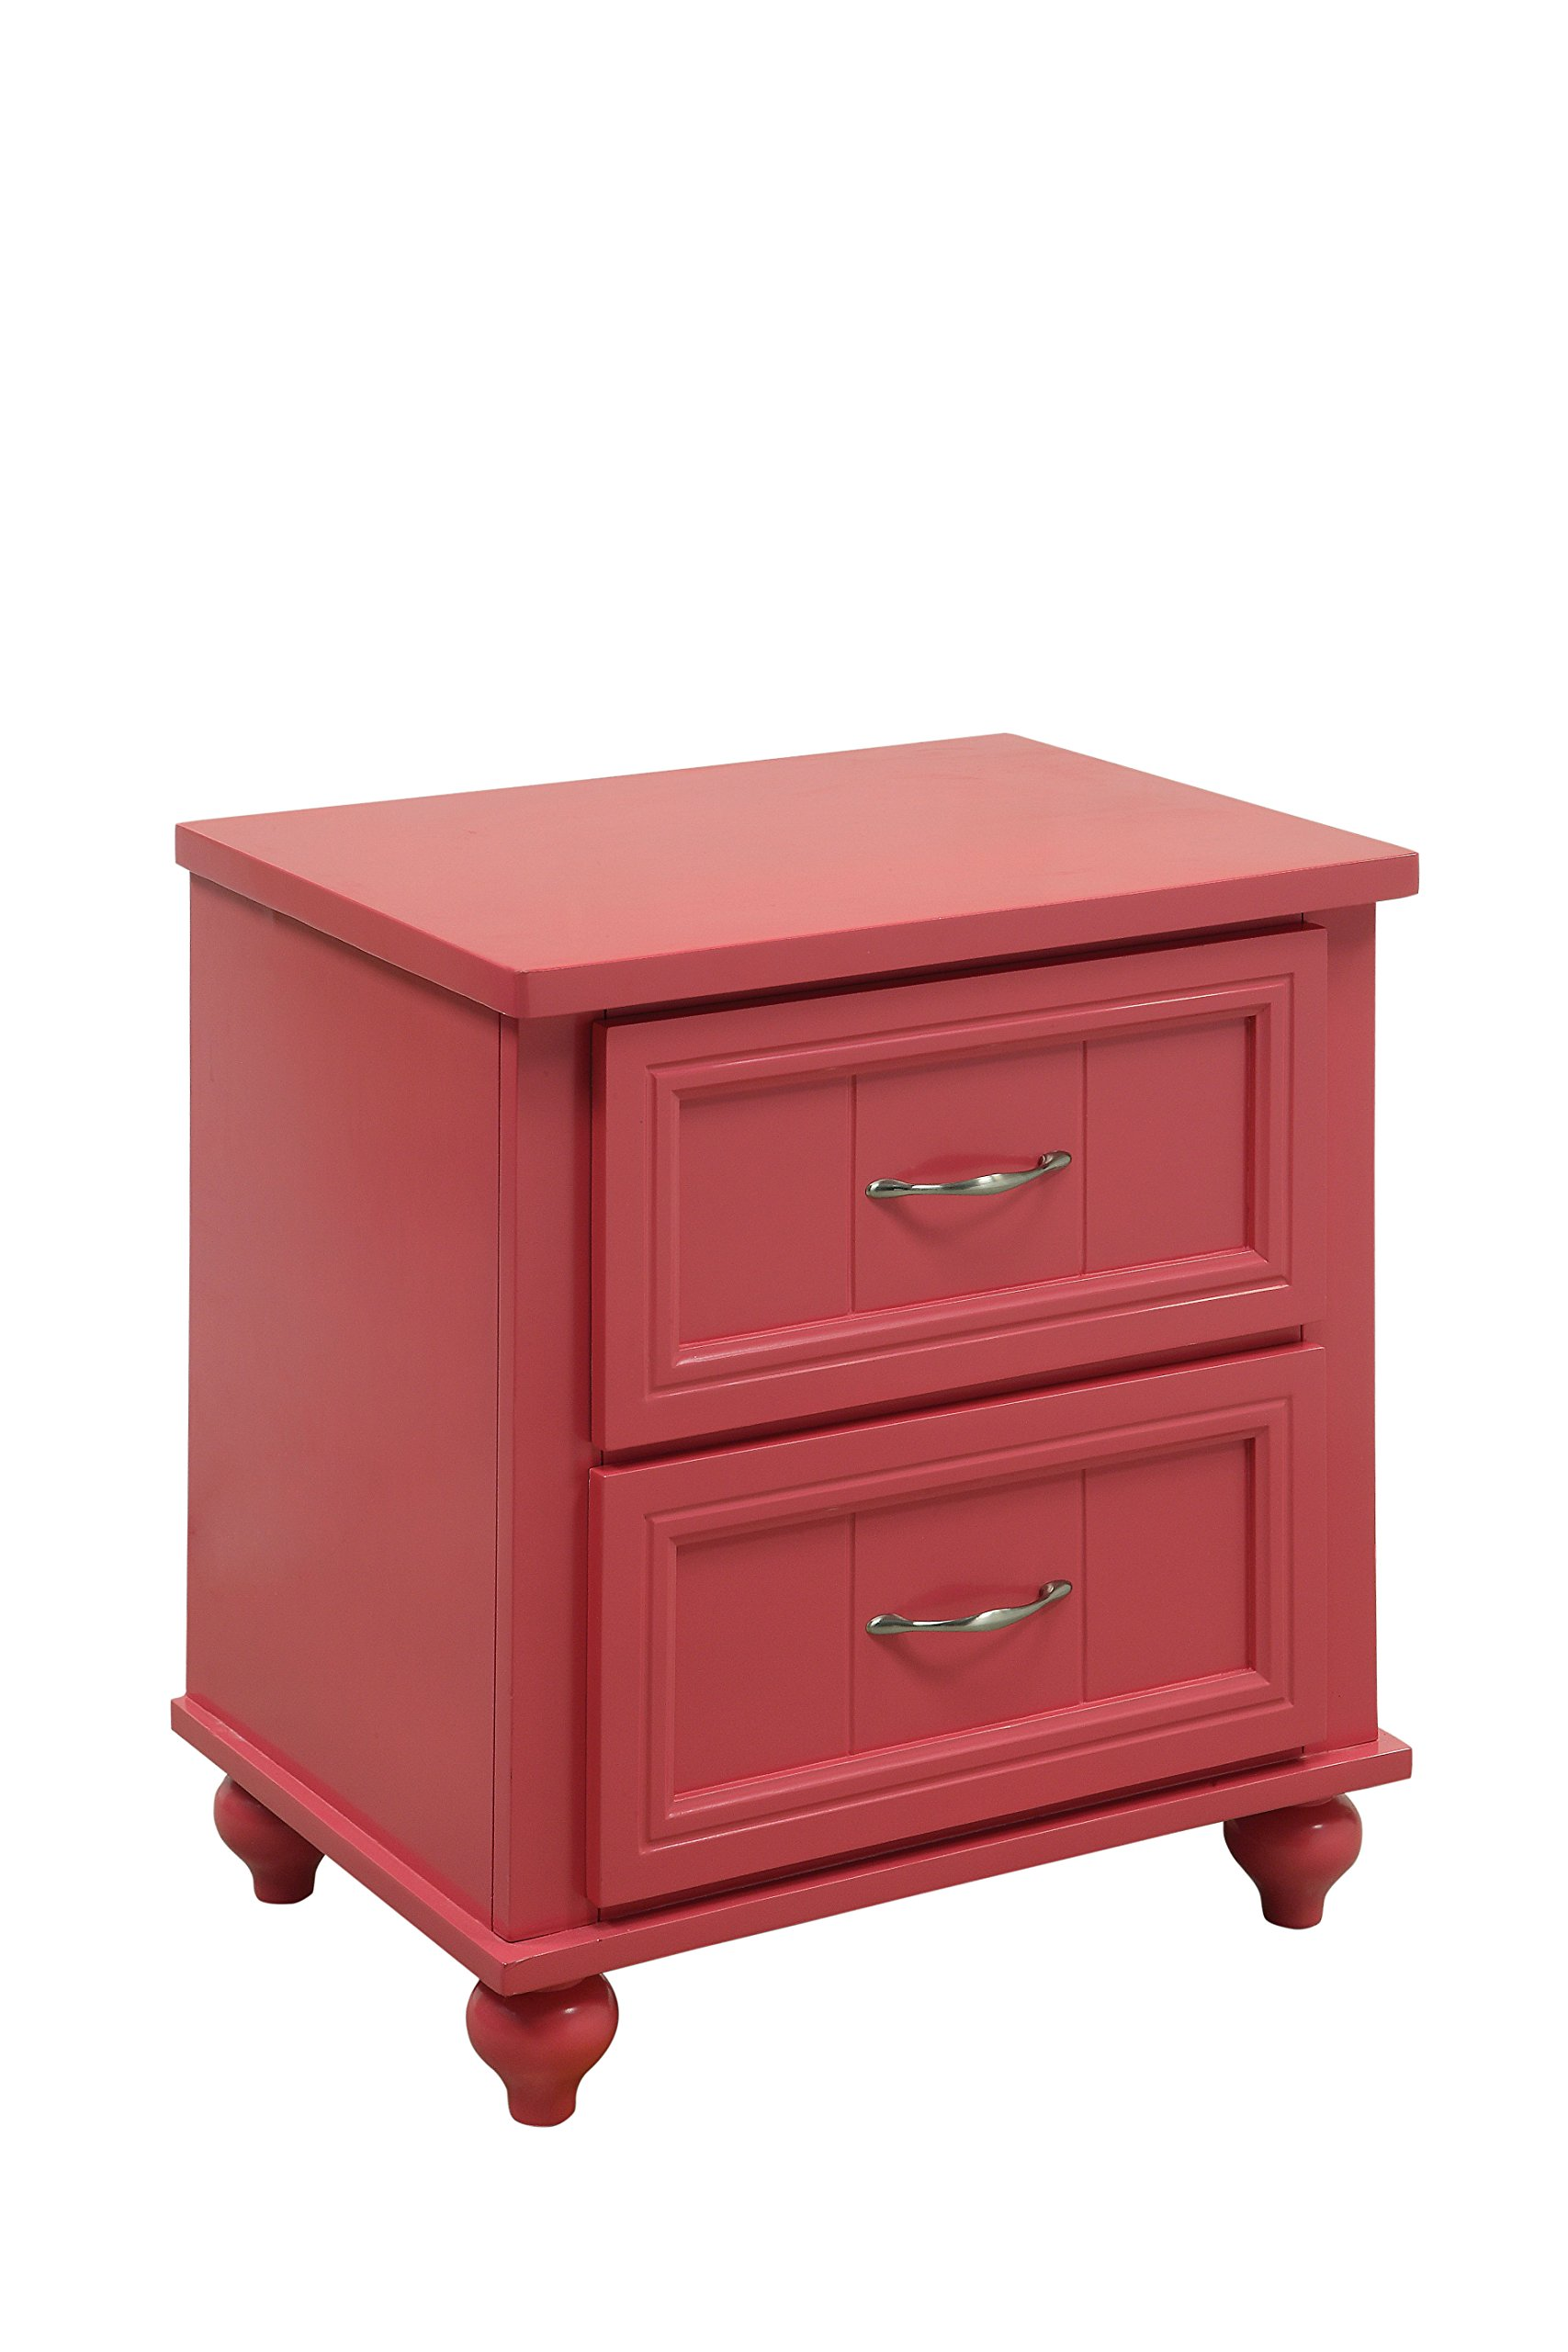 HOMES: Inside + Out Felix Transitional 2-Drawer Nightstand, Pink